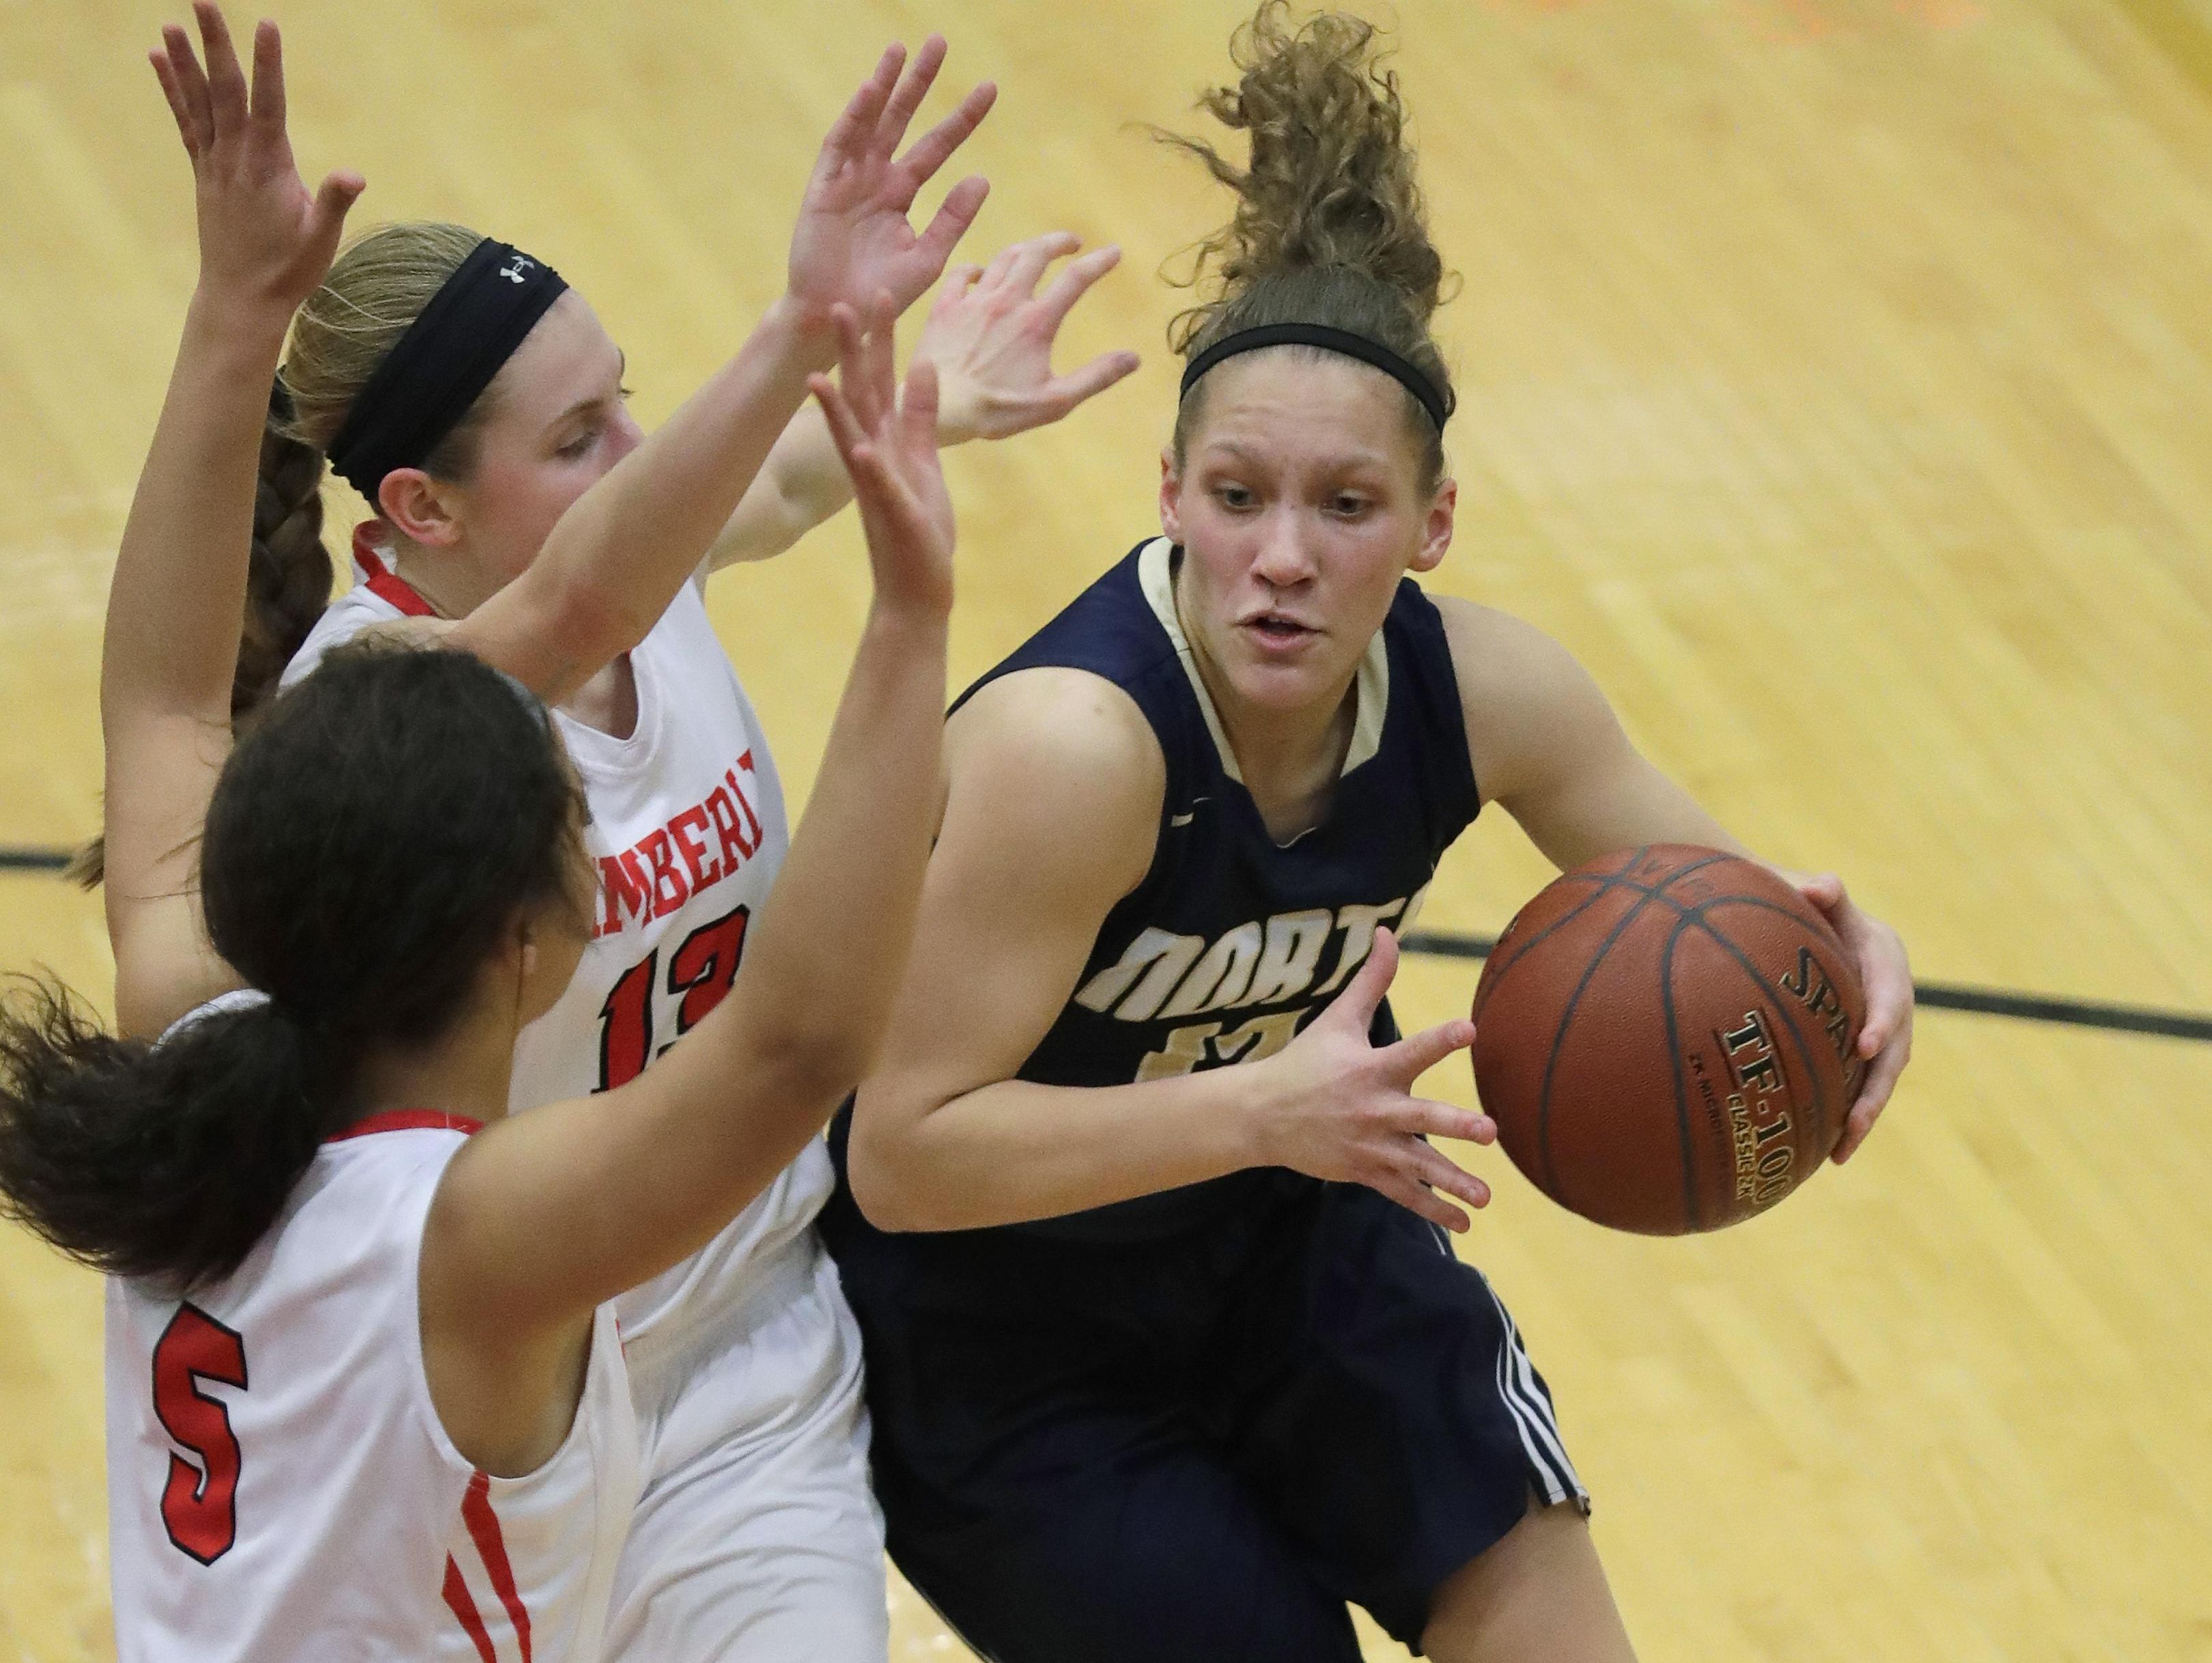 Appleton North's Callie Pohlman, right, drives to the hoop against Kimberly's Morgan Torzala (13) and Alina Hampton (5) during a Fox Valley Association game Tuesday in Kimberly.